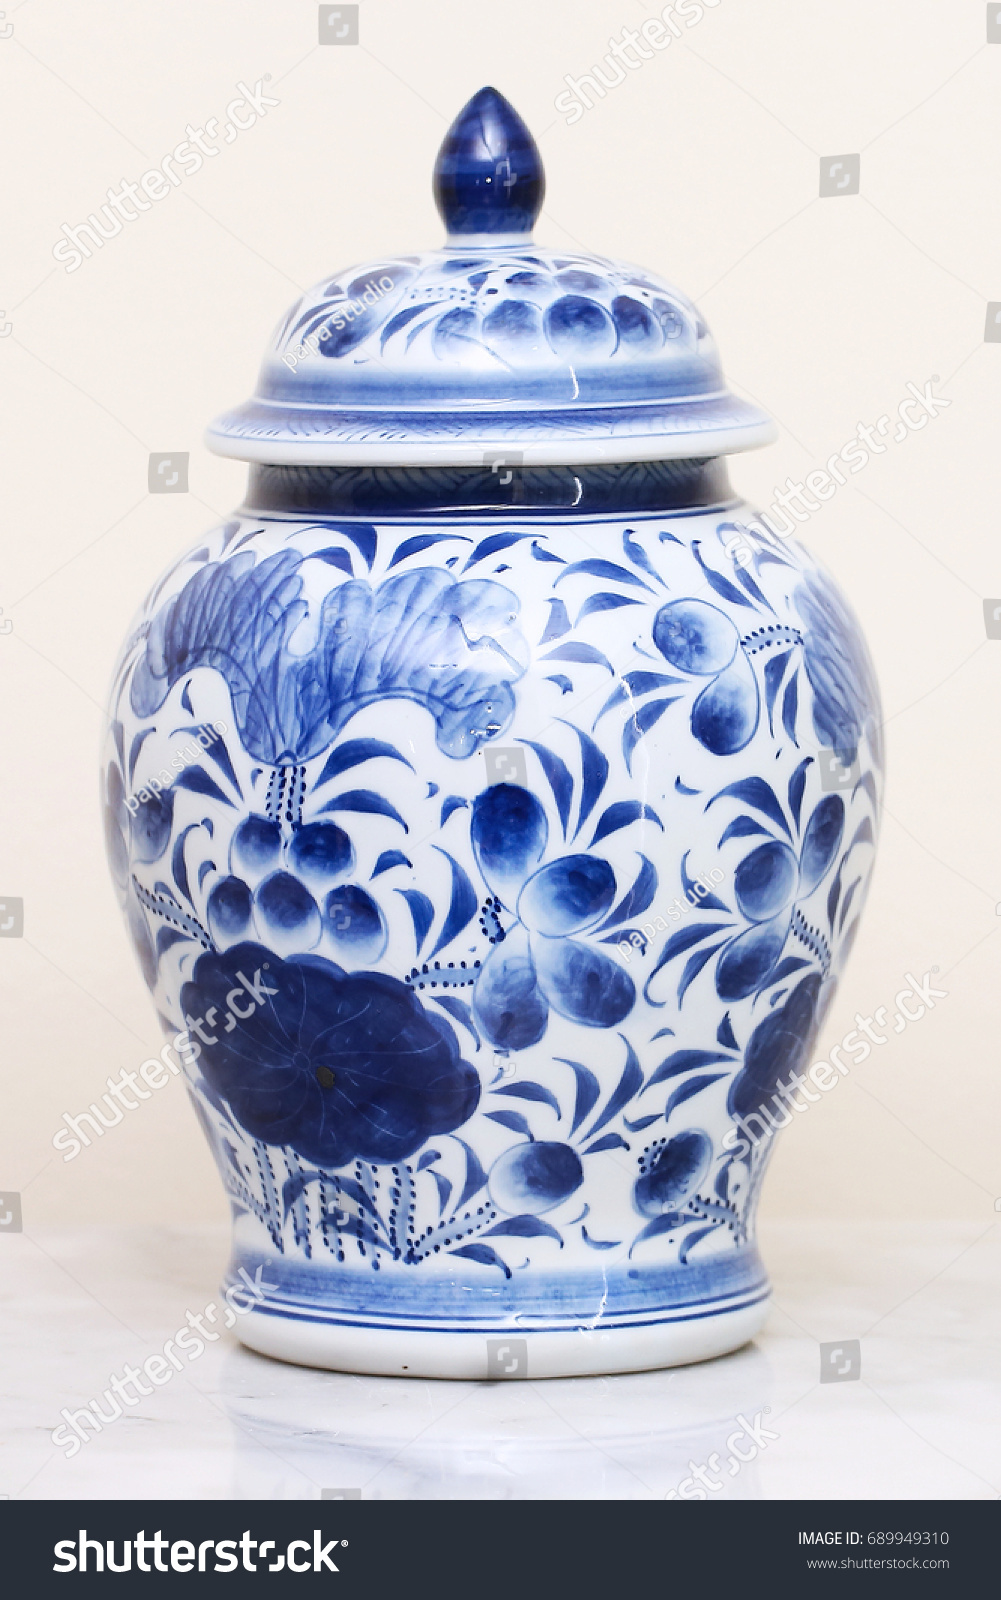 Chinese antique vase stock photo 689949310 shutterstock chinese antique vase reviewsmspy